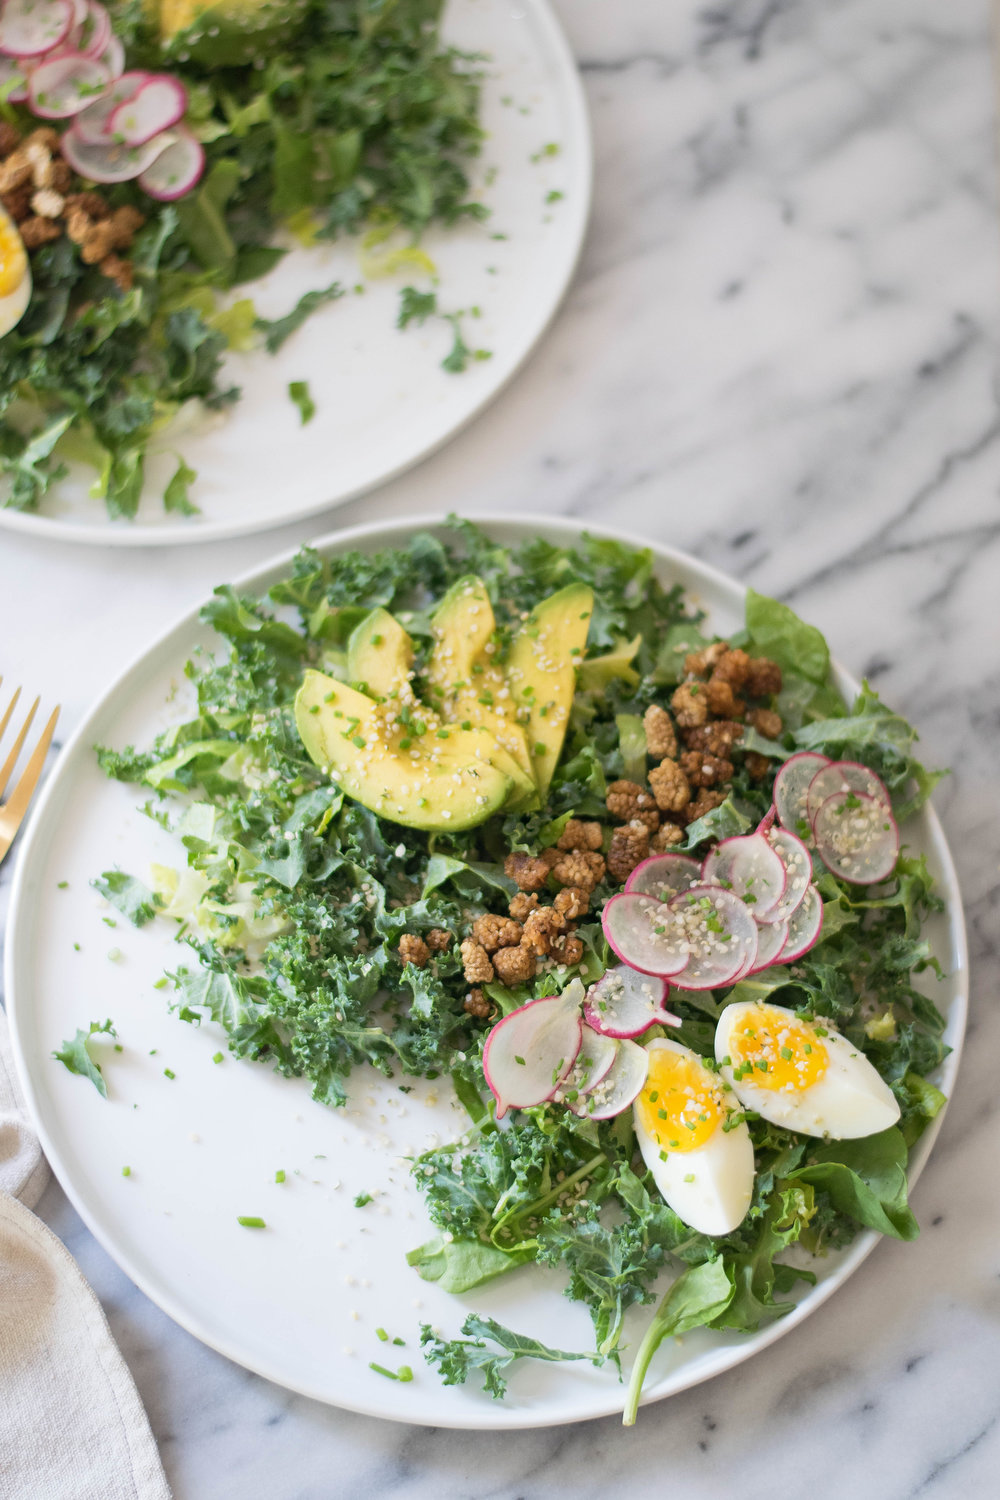 Herby Superfood Salad + A Simple Vinaigrette | All Purpose Flour Child